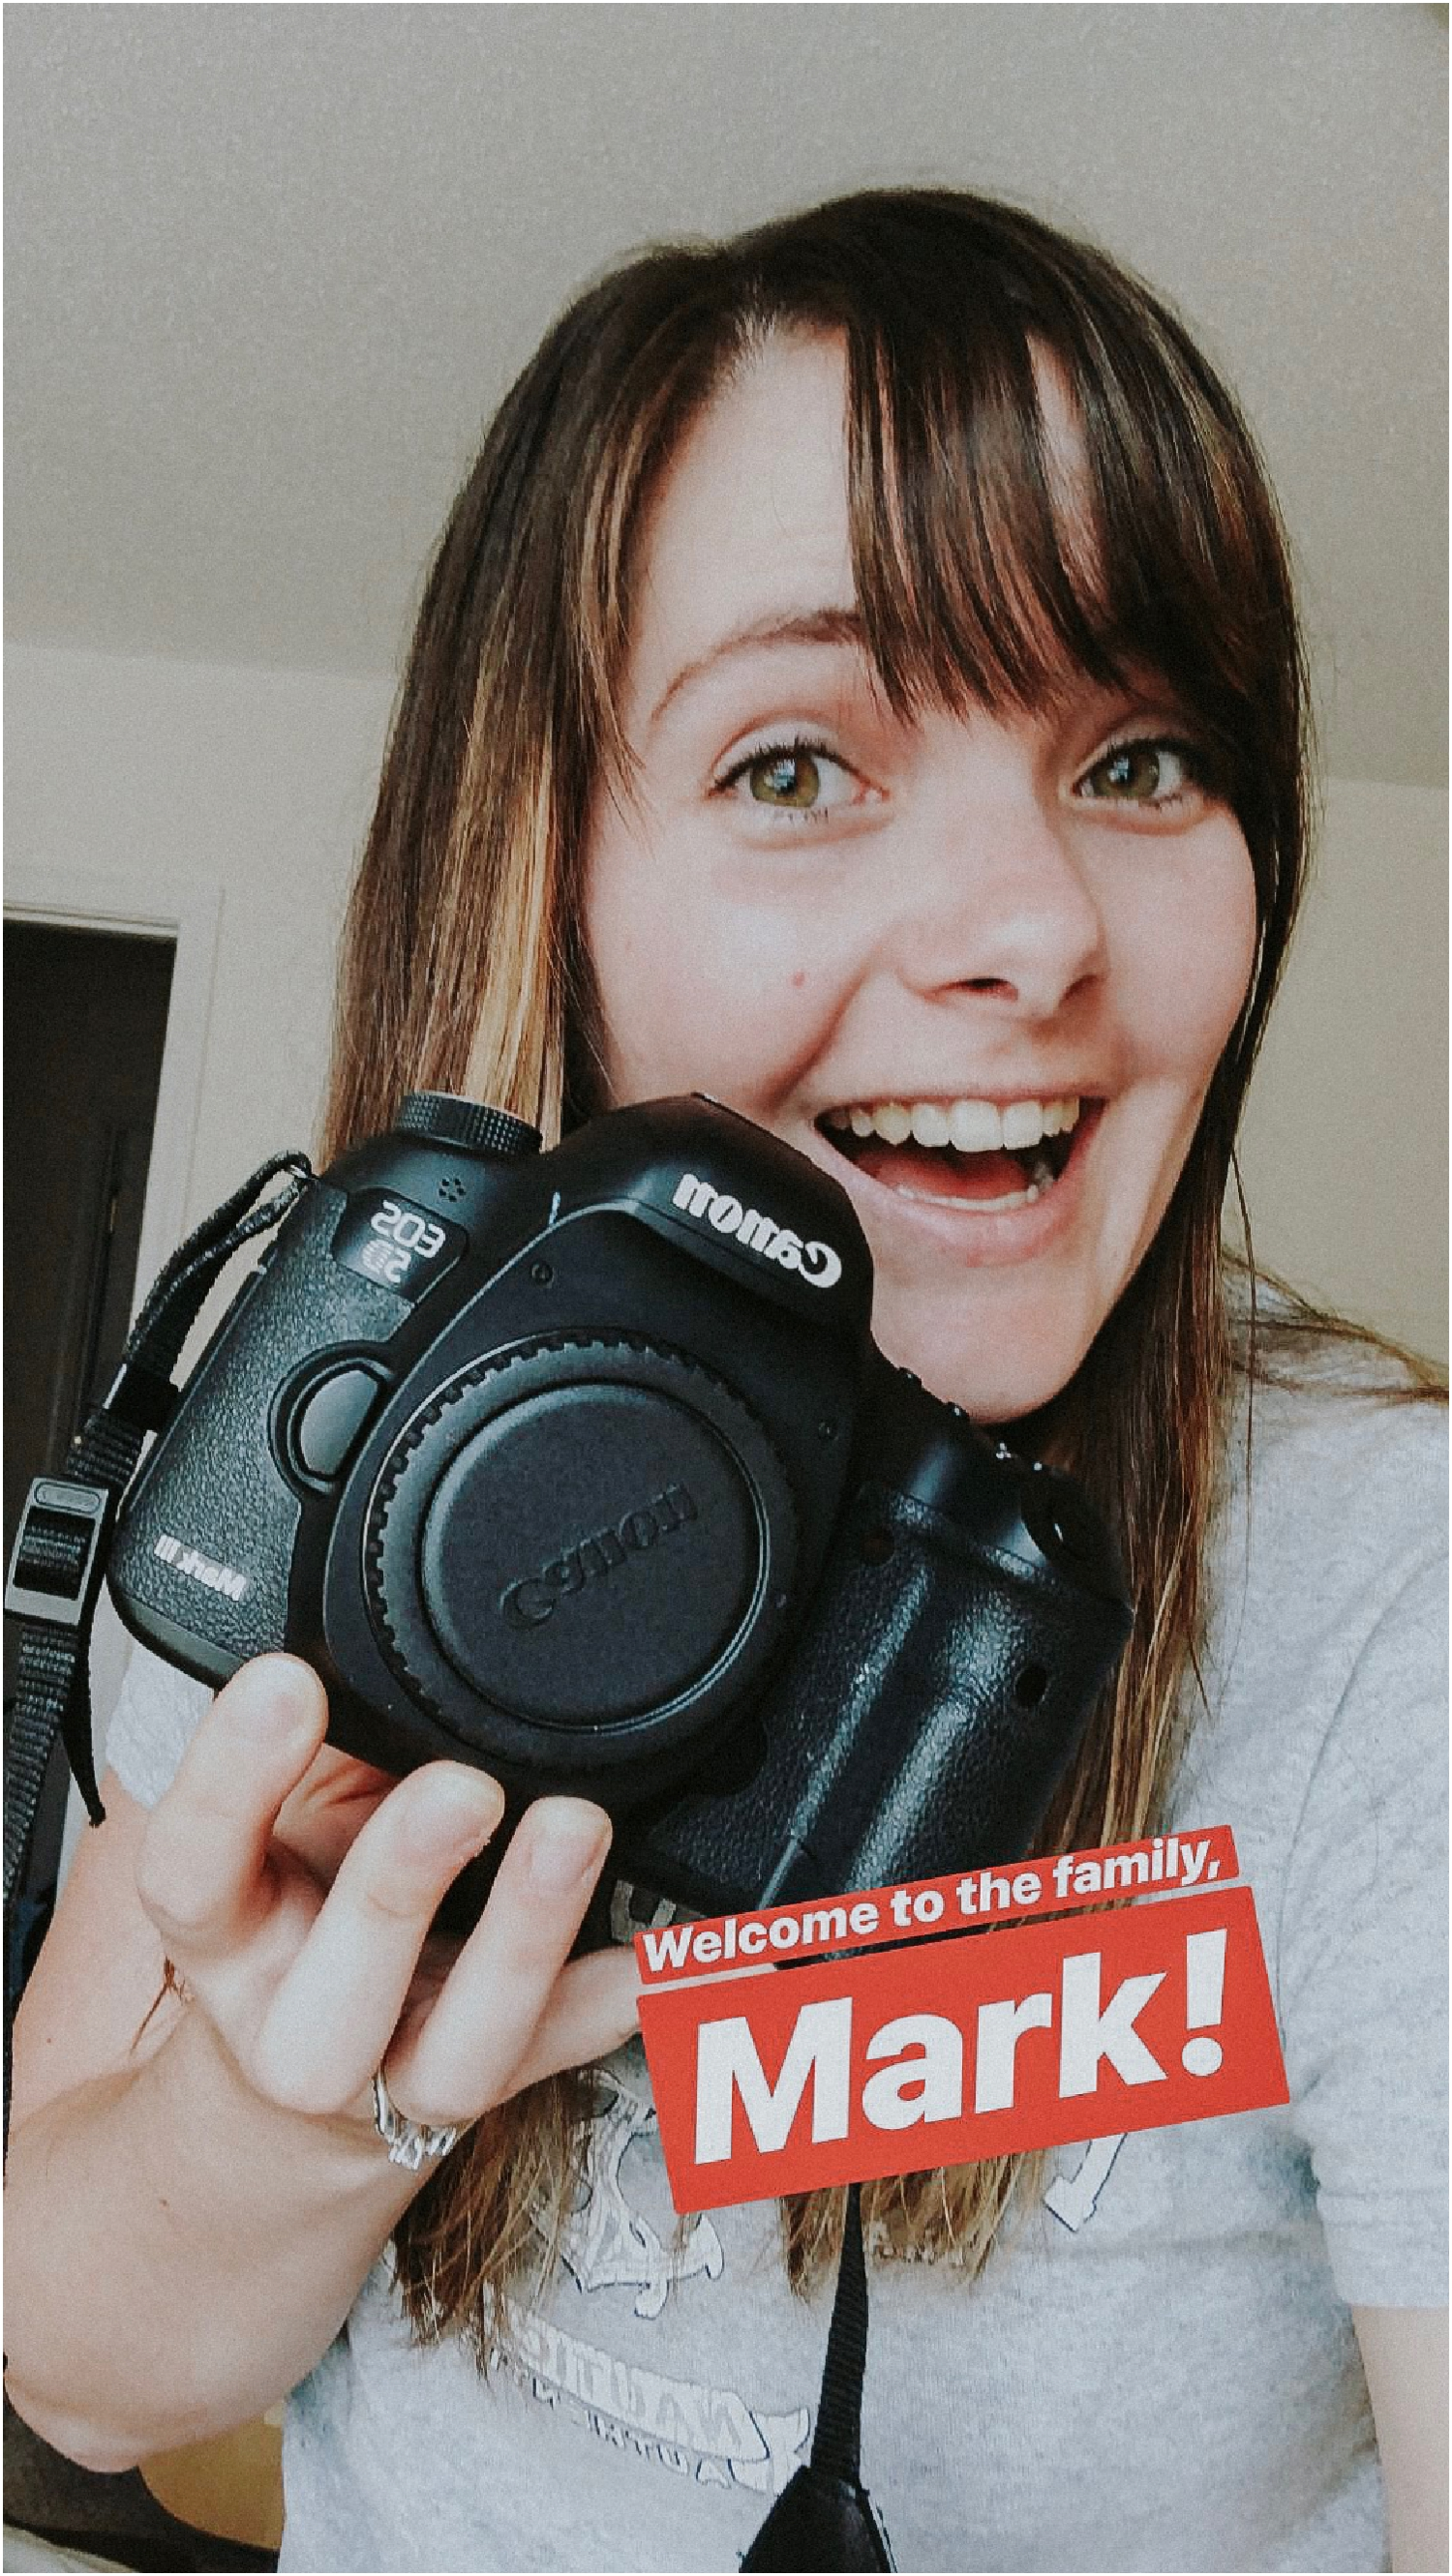 Welcomed a new family member- Mark, the Canon 5D Mark III!